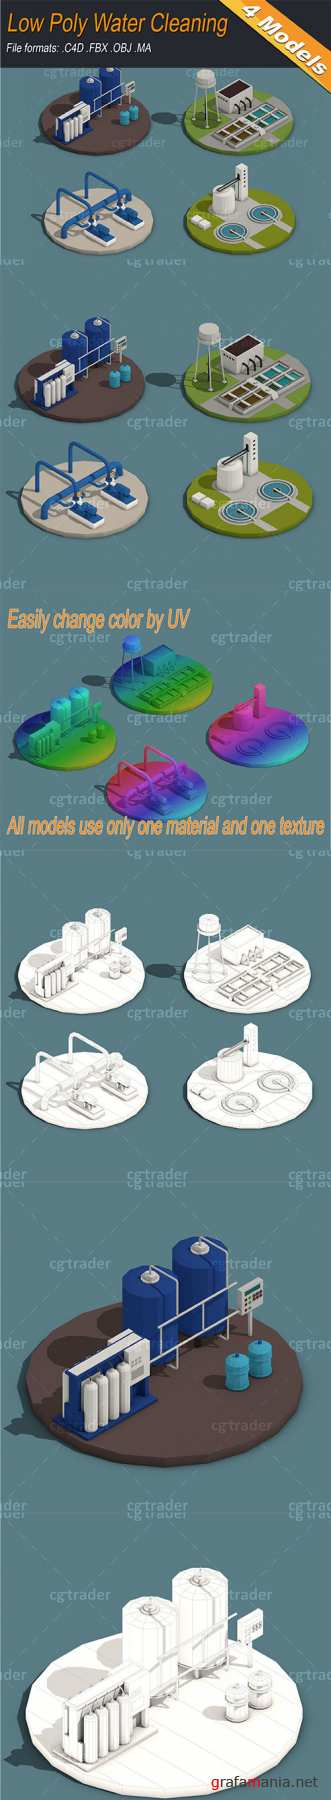 Low Poly Water Cleaning Isometric Low-poly 3D model